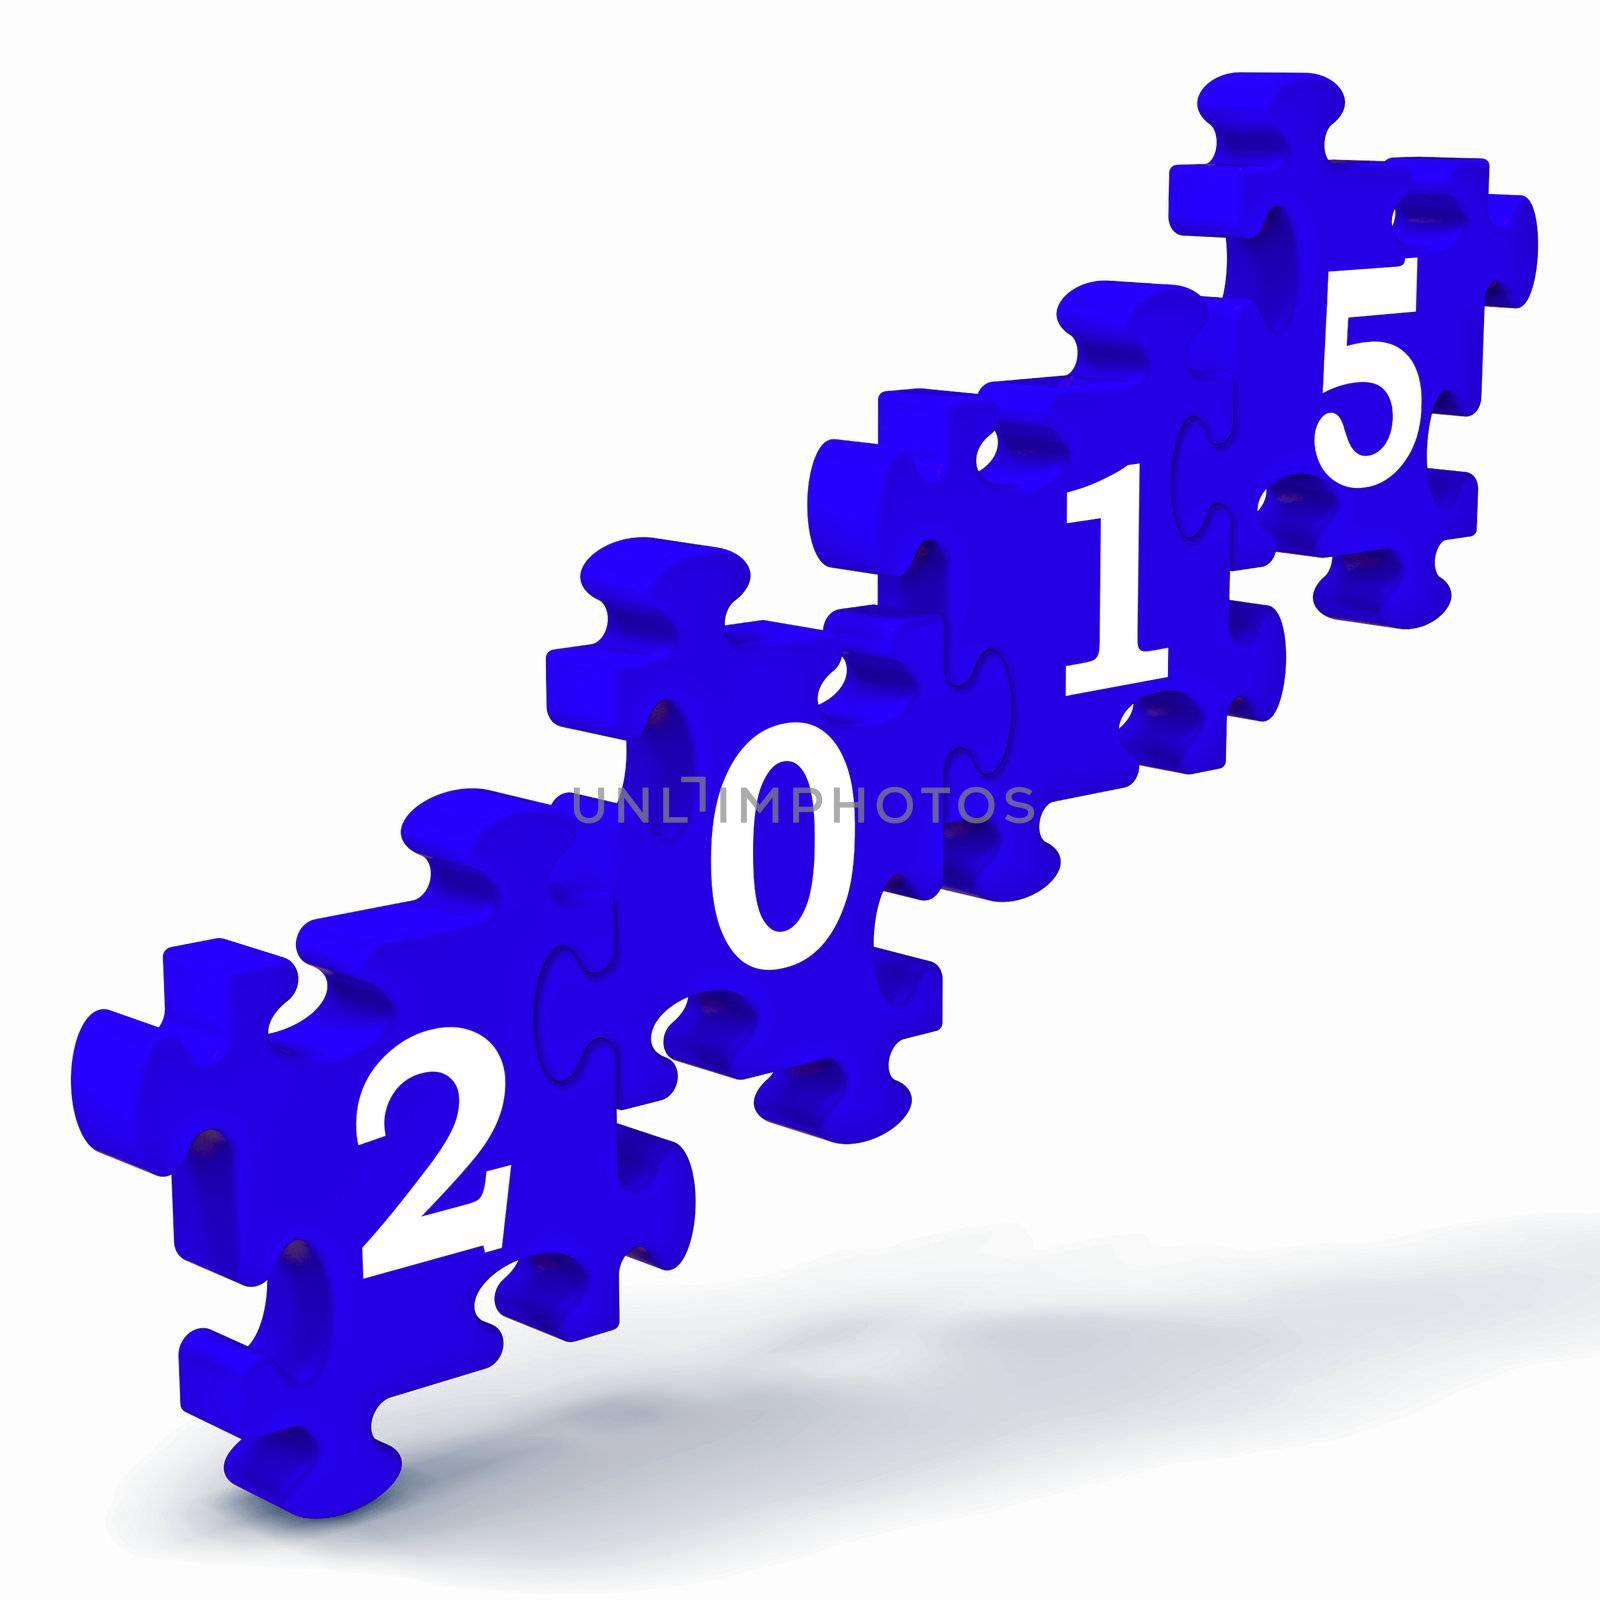 2015 Puzzle Shows Annual Resolutions And Goals